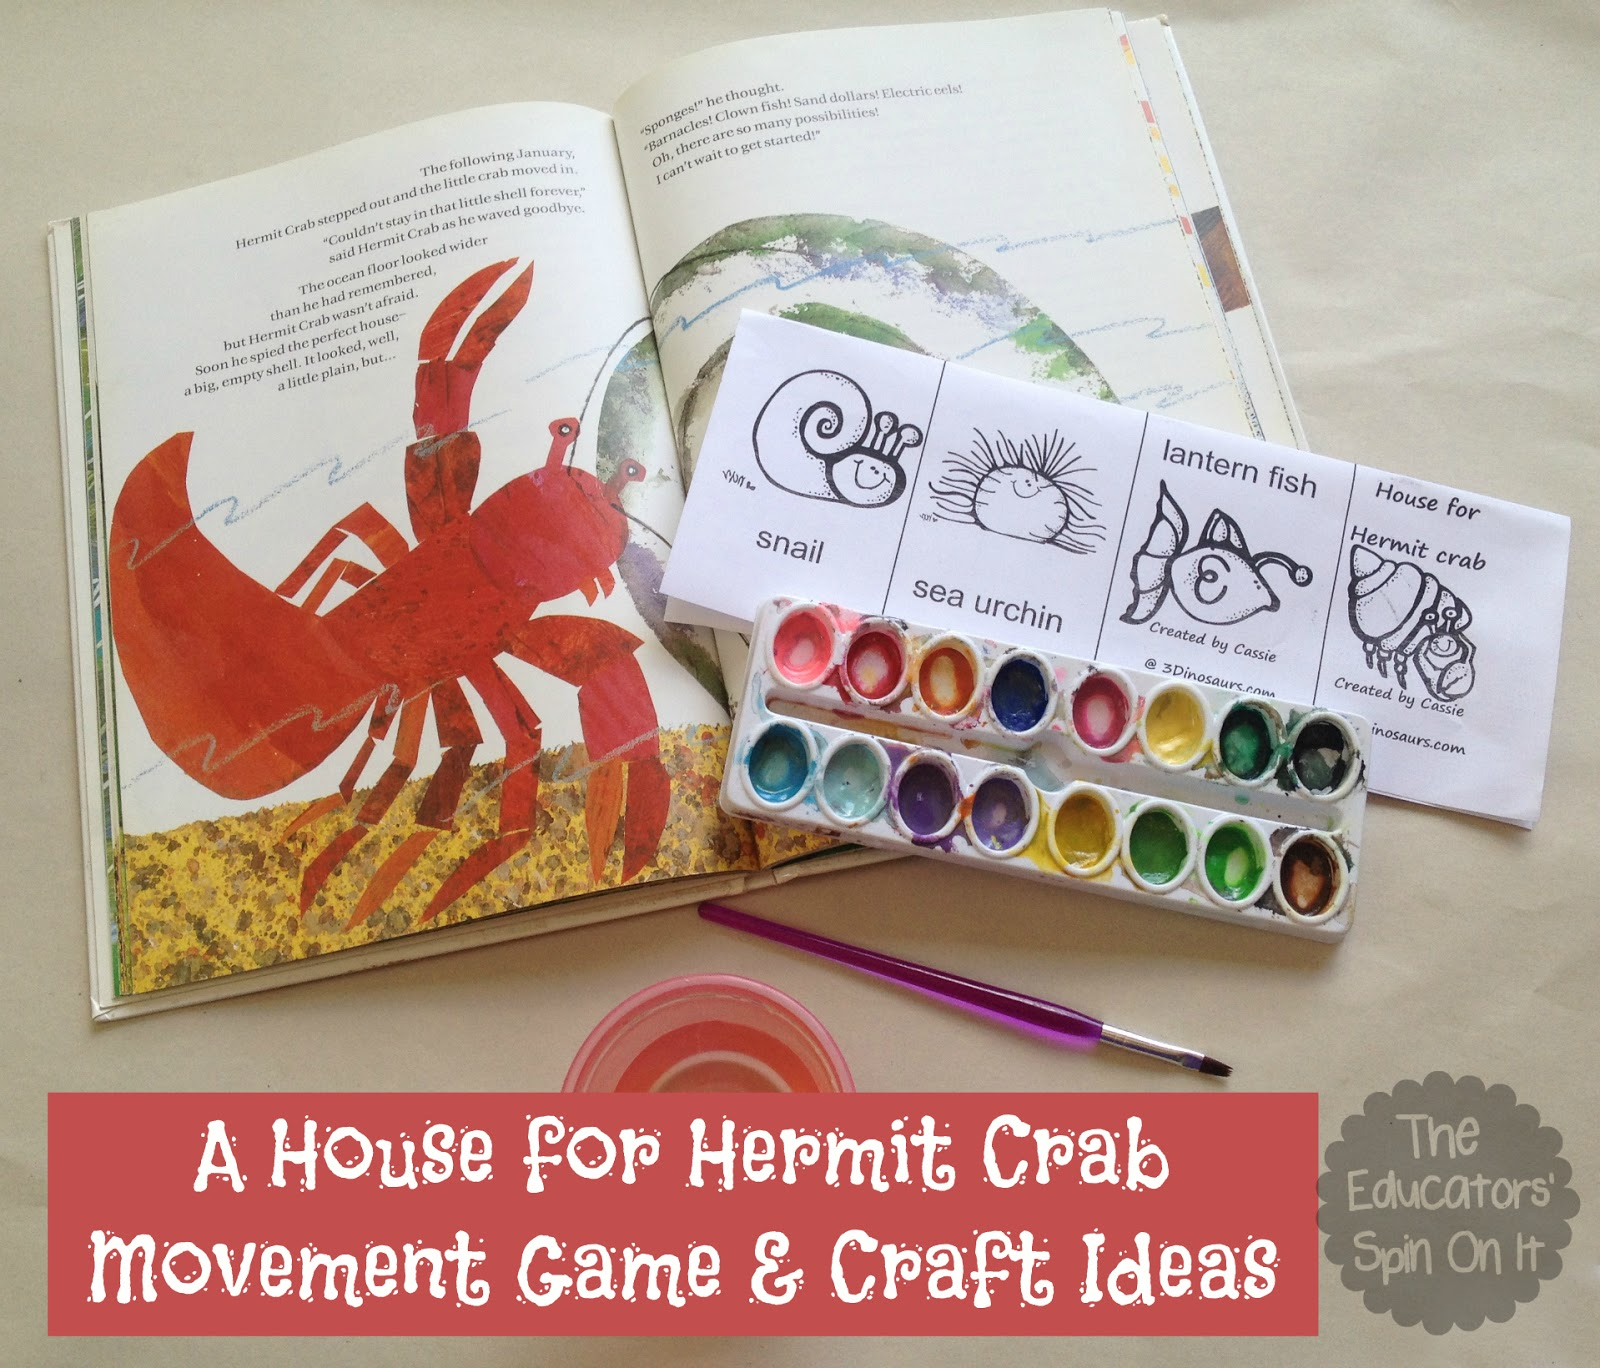 A House for Hermit Crab Activities   The Educators     Spin On ItA House for Hermit Crab Activities